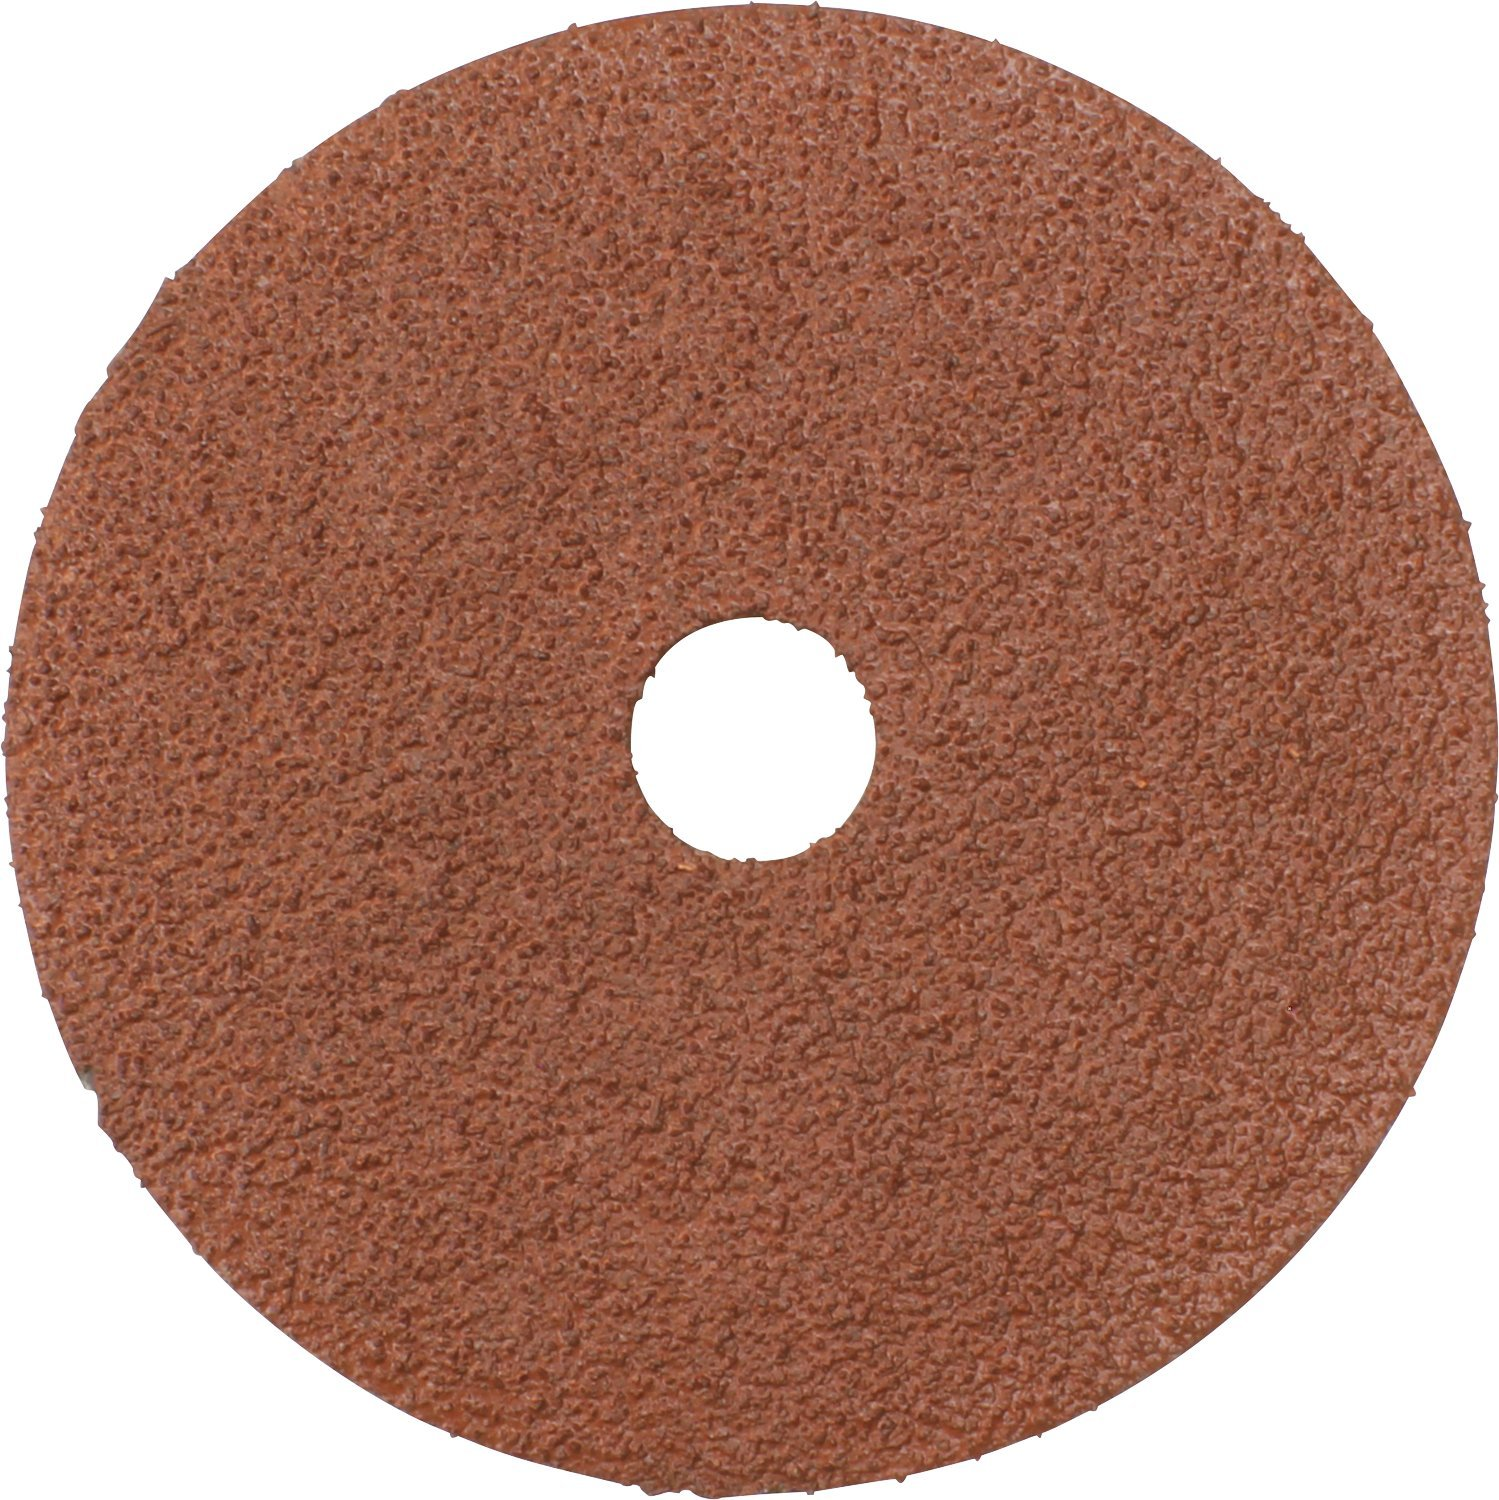 Makita 742038-A-5 4-Inch 50 Grit Abrasive Disc, 5-Pack